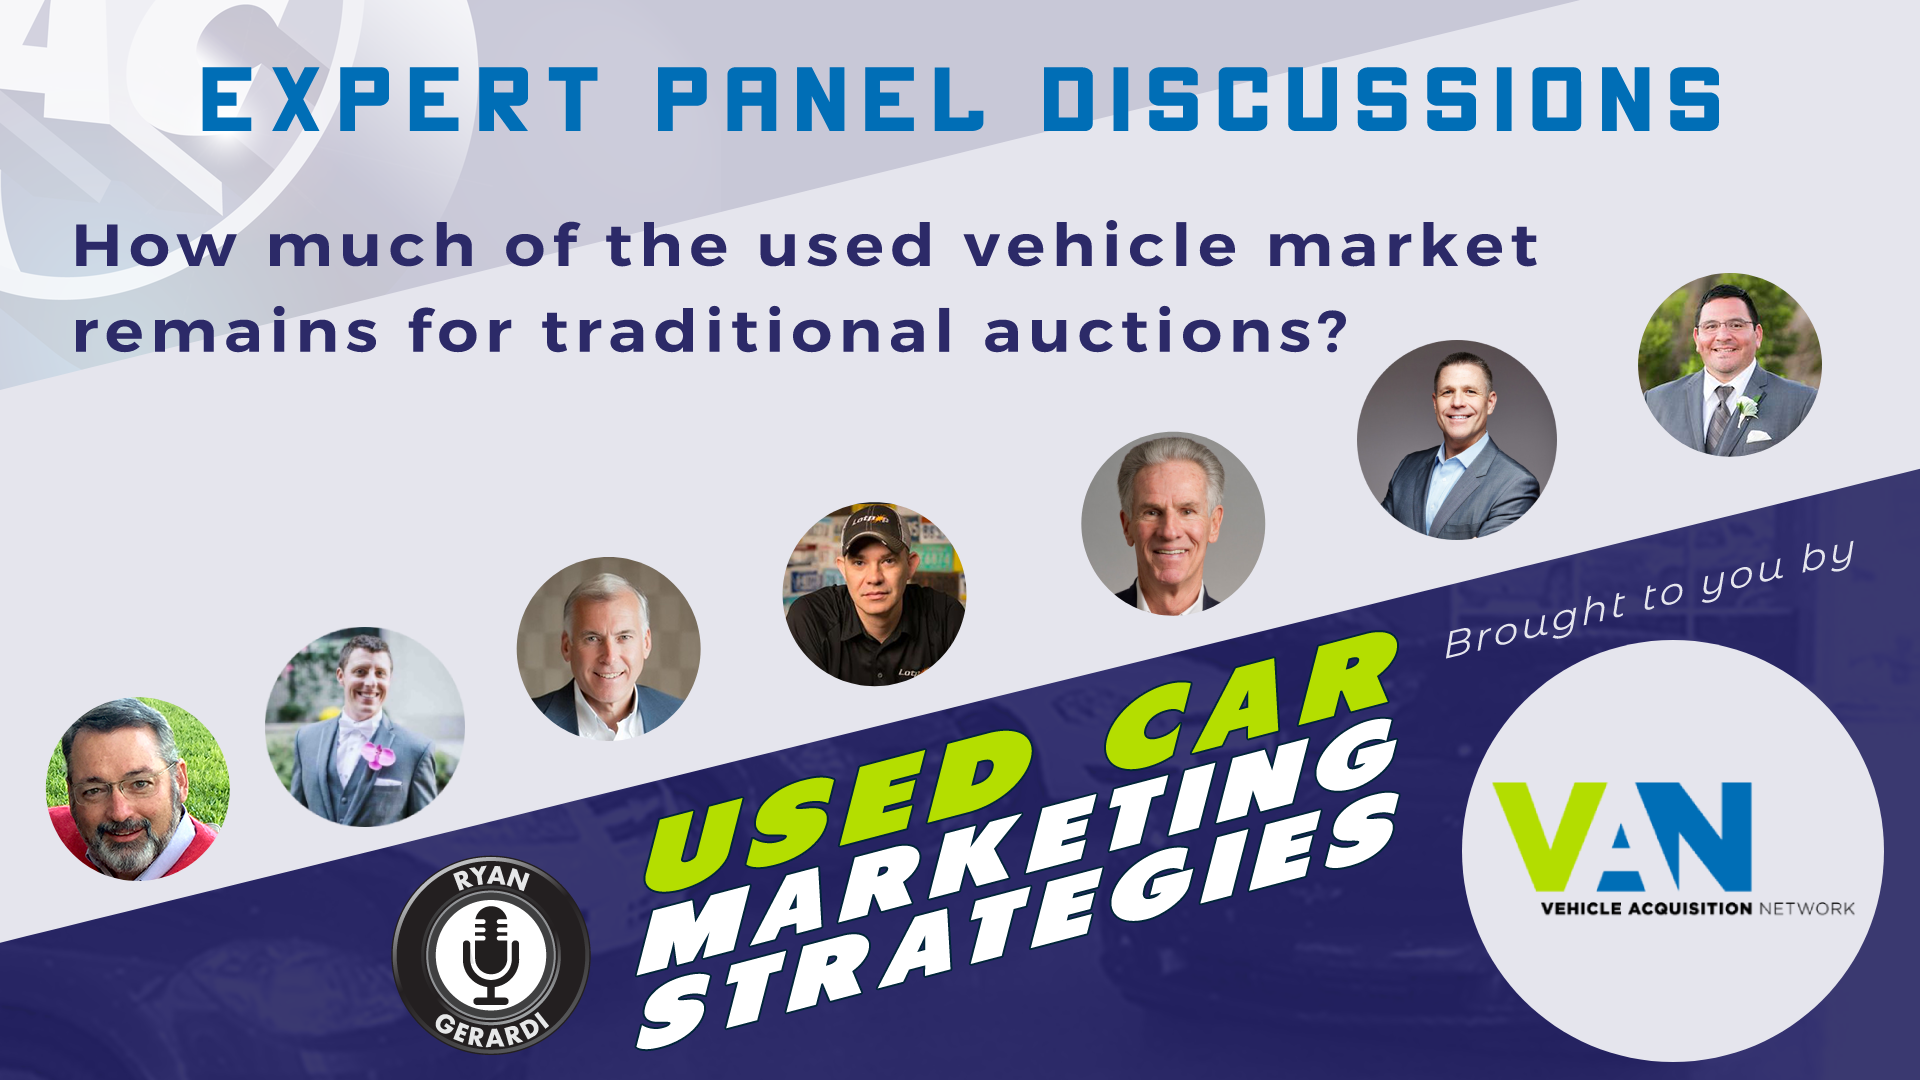 How Much of the Used Vehicle Market Remains for Traditional Auctions? – Expert Panel Discussion